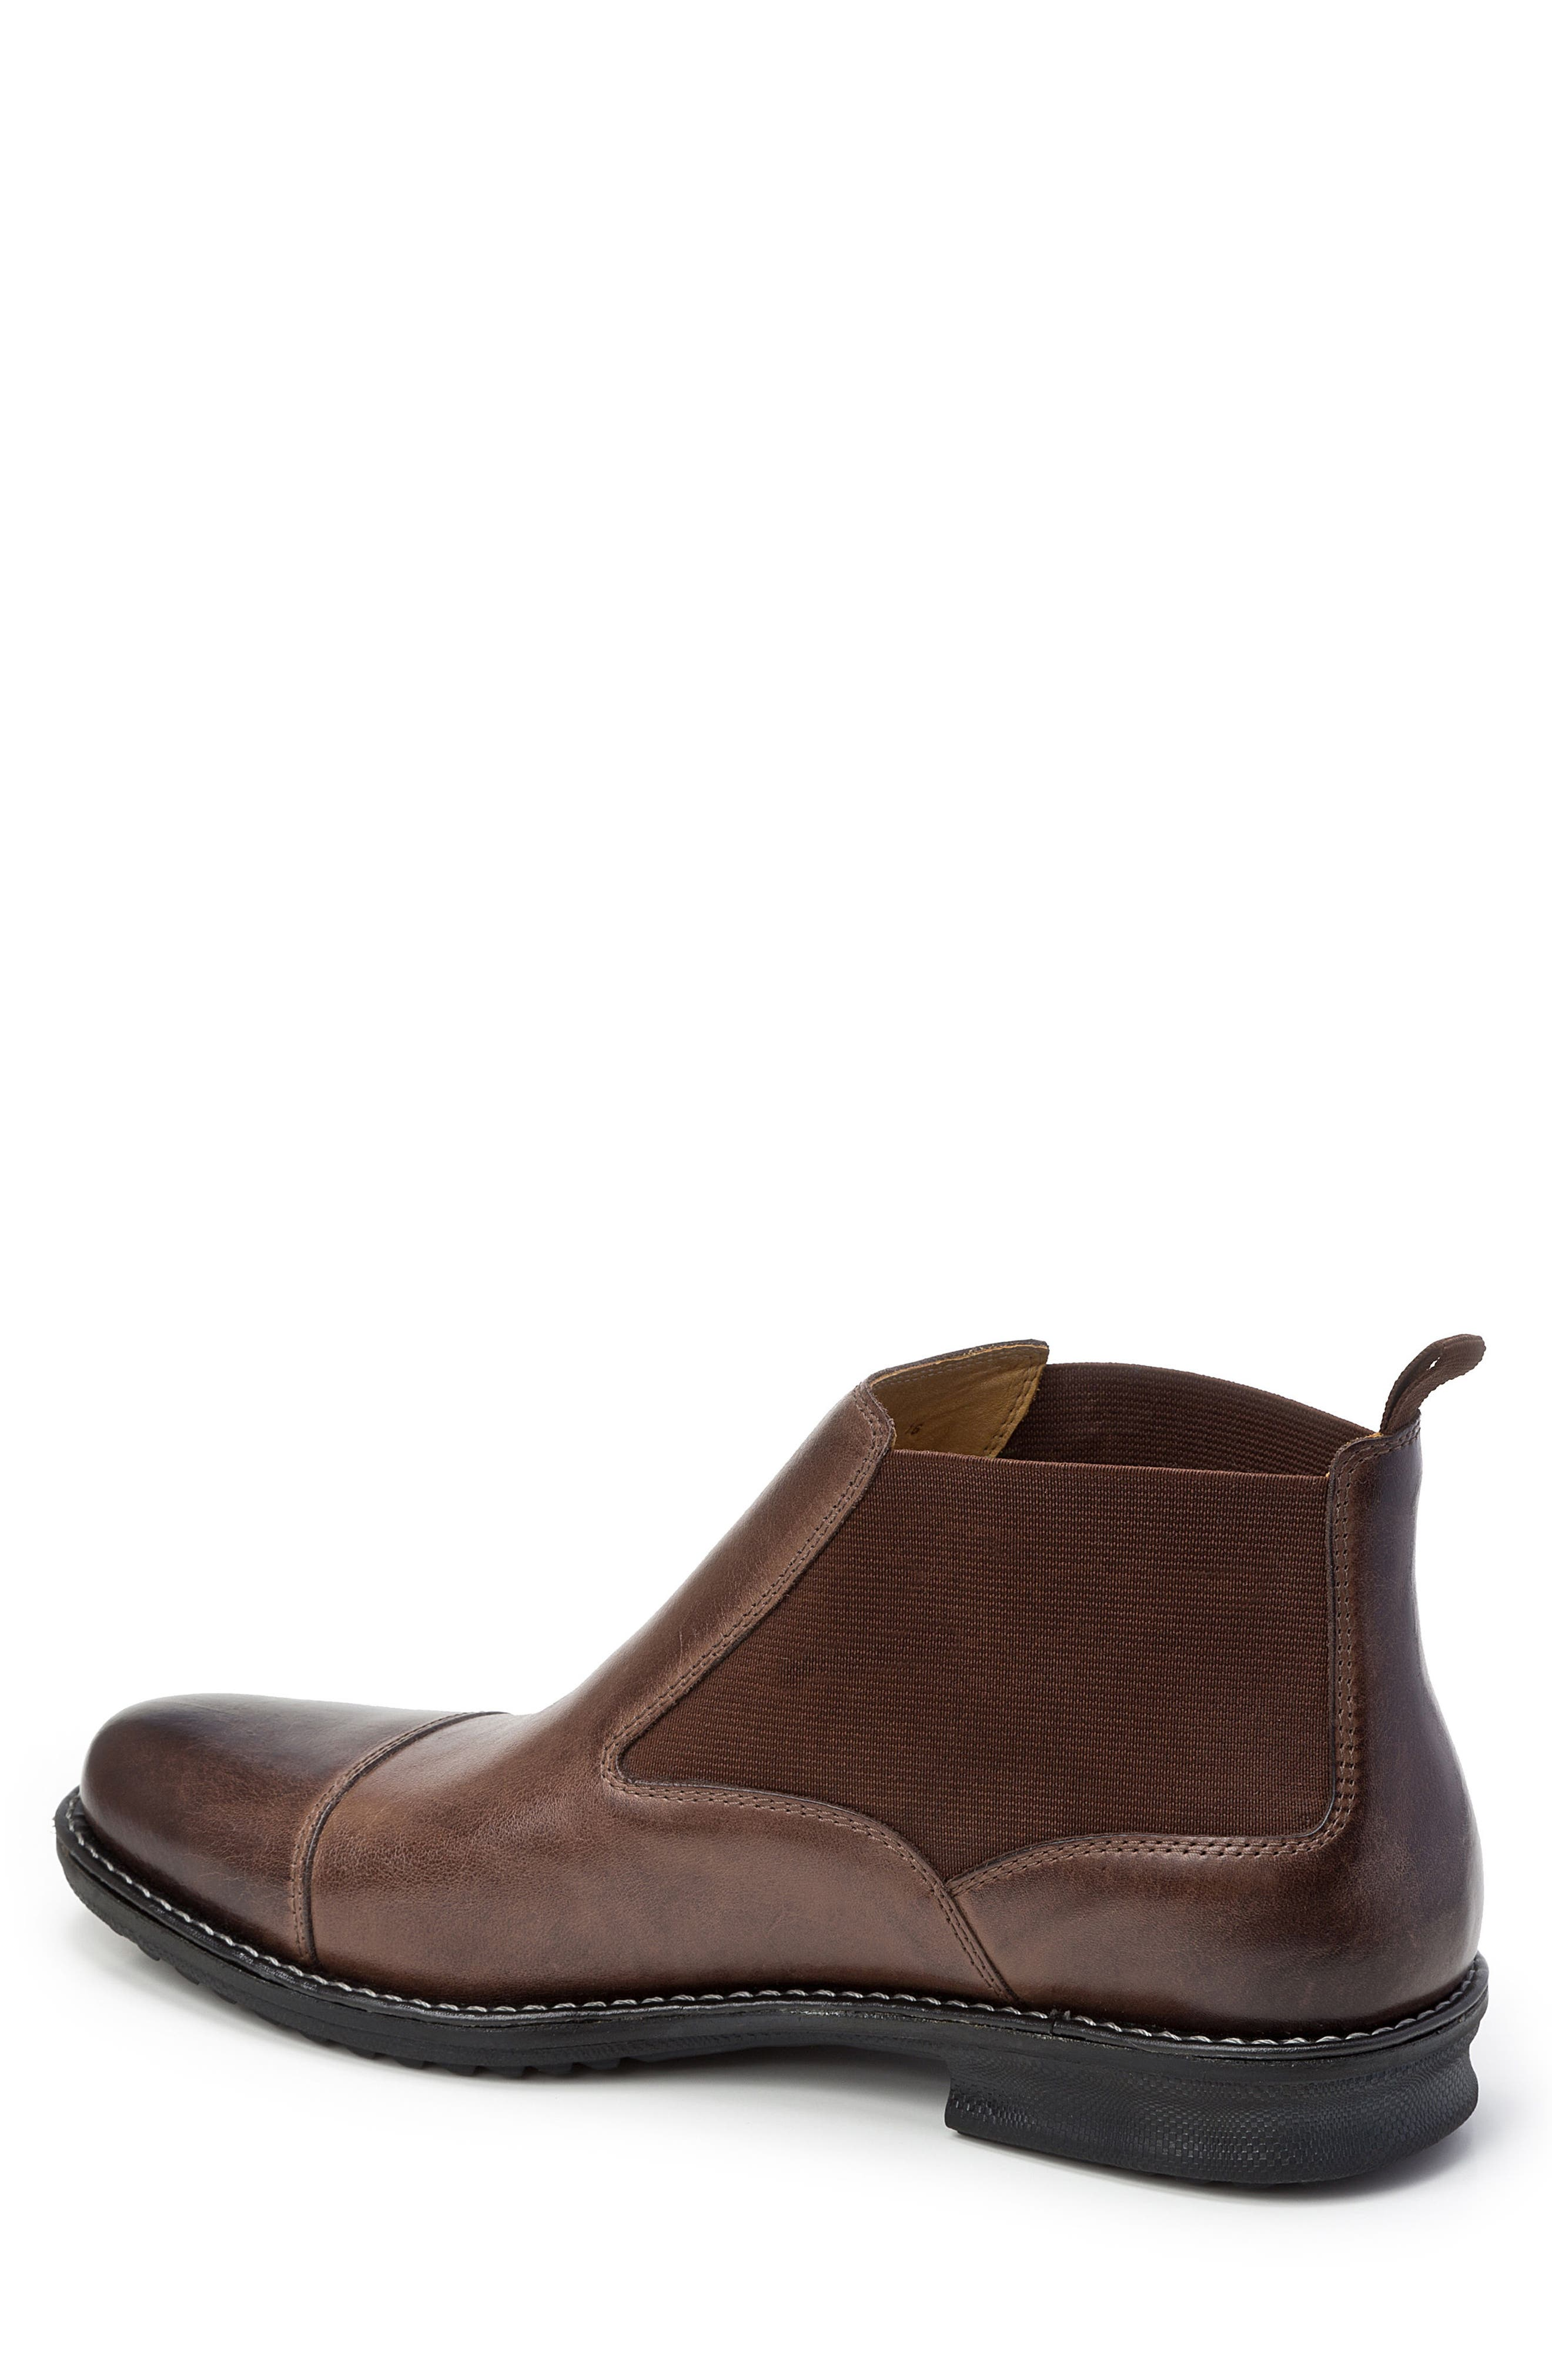 Norbert Chelsea Boot,                             Alternate thumbnail 2, color,                             Brown Leather